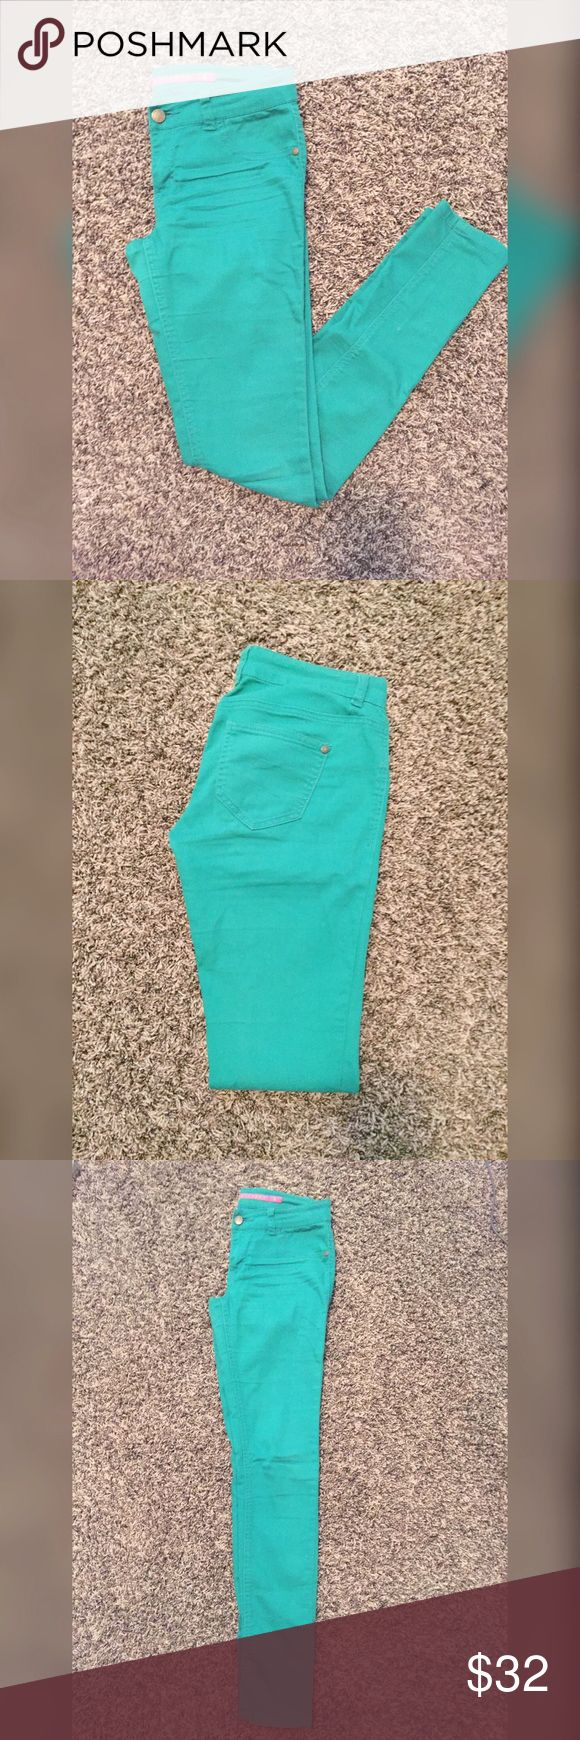 Tilly's Solid Green Teal Skinny Jeans These are green teal skinny jeans from Tilly's. They have two pockets on the back. They have one button & zipper on the front. These jeans are a size 3. Tilly's Pants Skinny